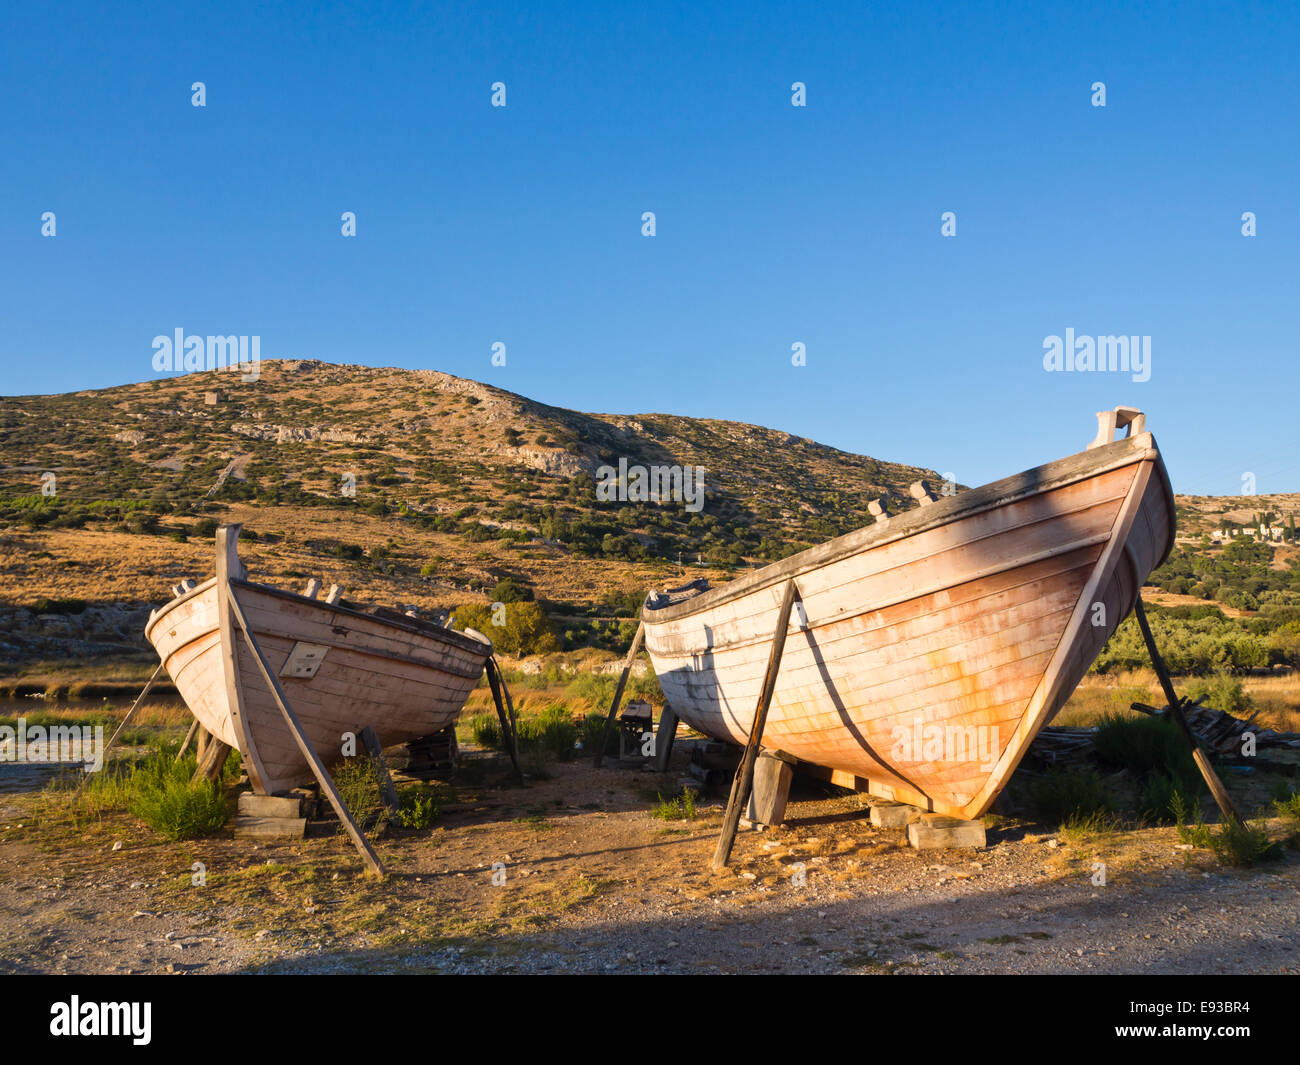 Greek wooden fishing boat hulls placed as roadside decoration, golden evening light colouring the countryside, Samos Stock Photo